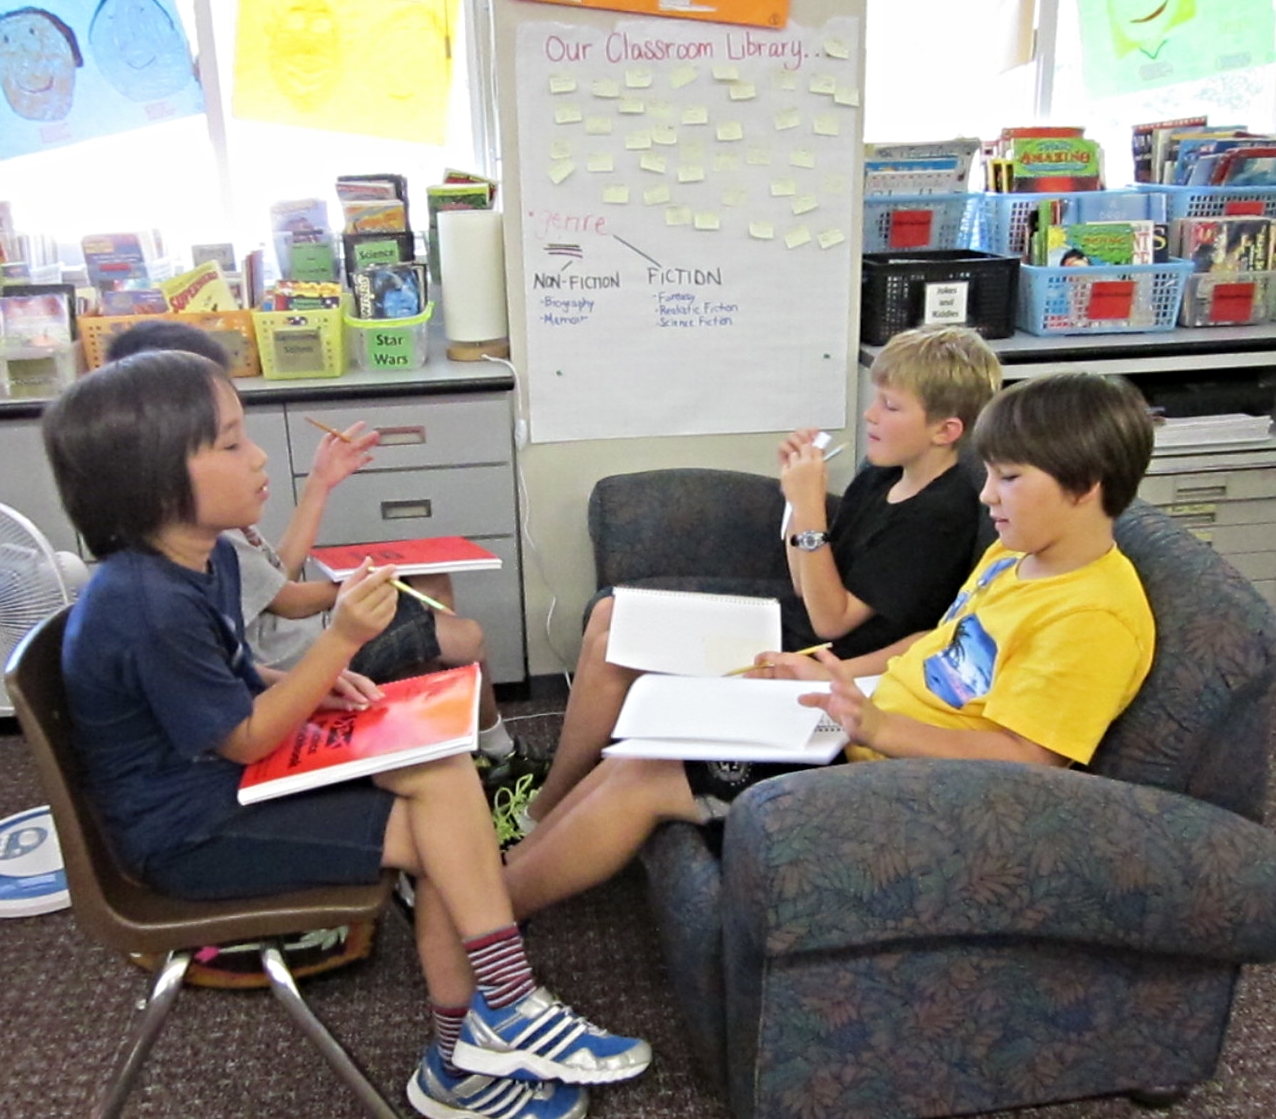 """We had to teach into listening skills and used a timer to honor each person's voice. The students conducting the interview were introduced to key words to help them did deeper for information: """"Why?"""" """"Tell me more..."""""""